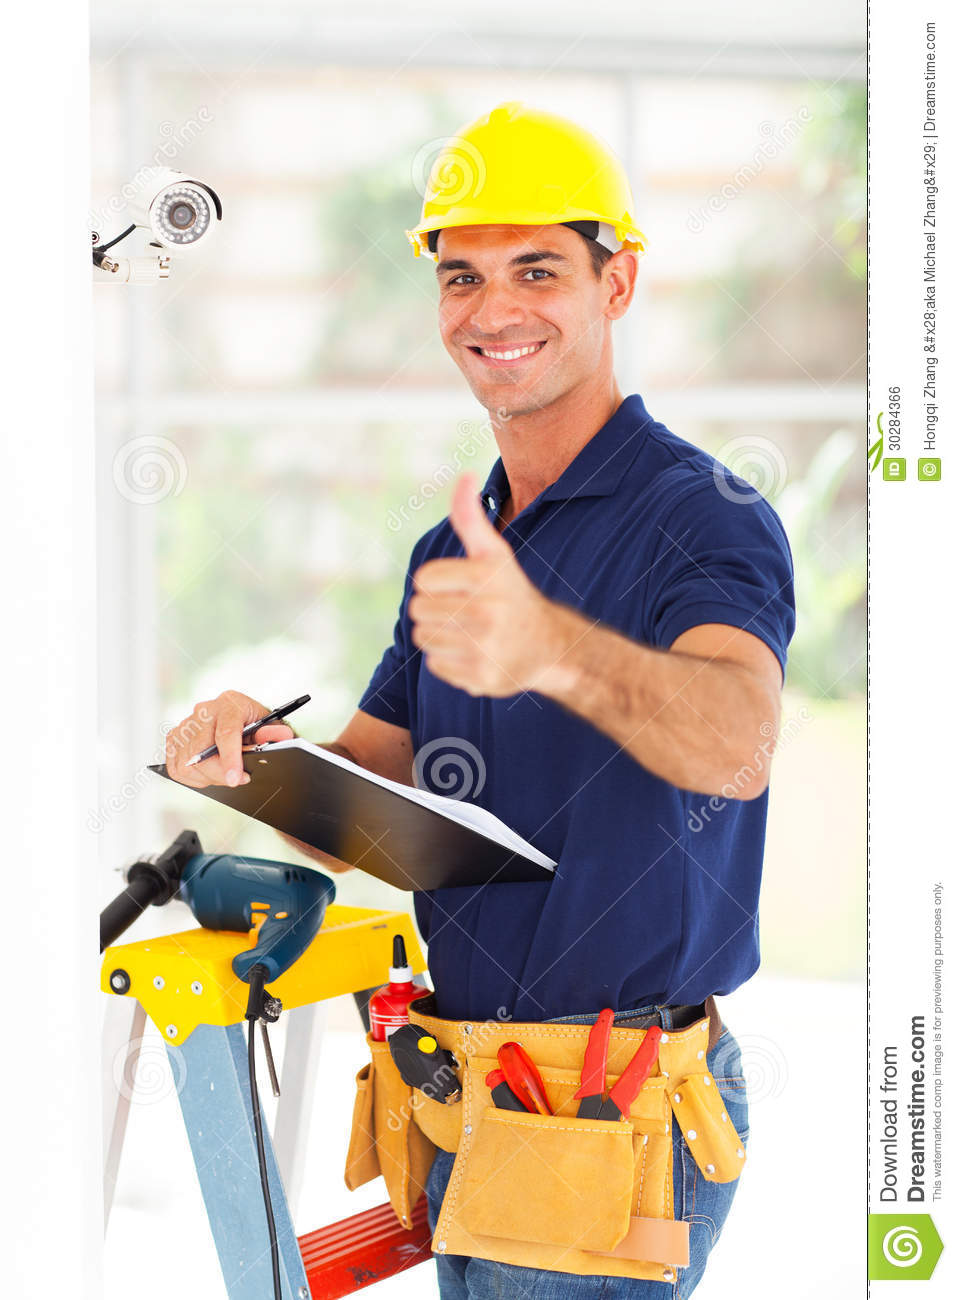 Cctv Teachnician Thumb Up Royalty Free Stock Image Image